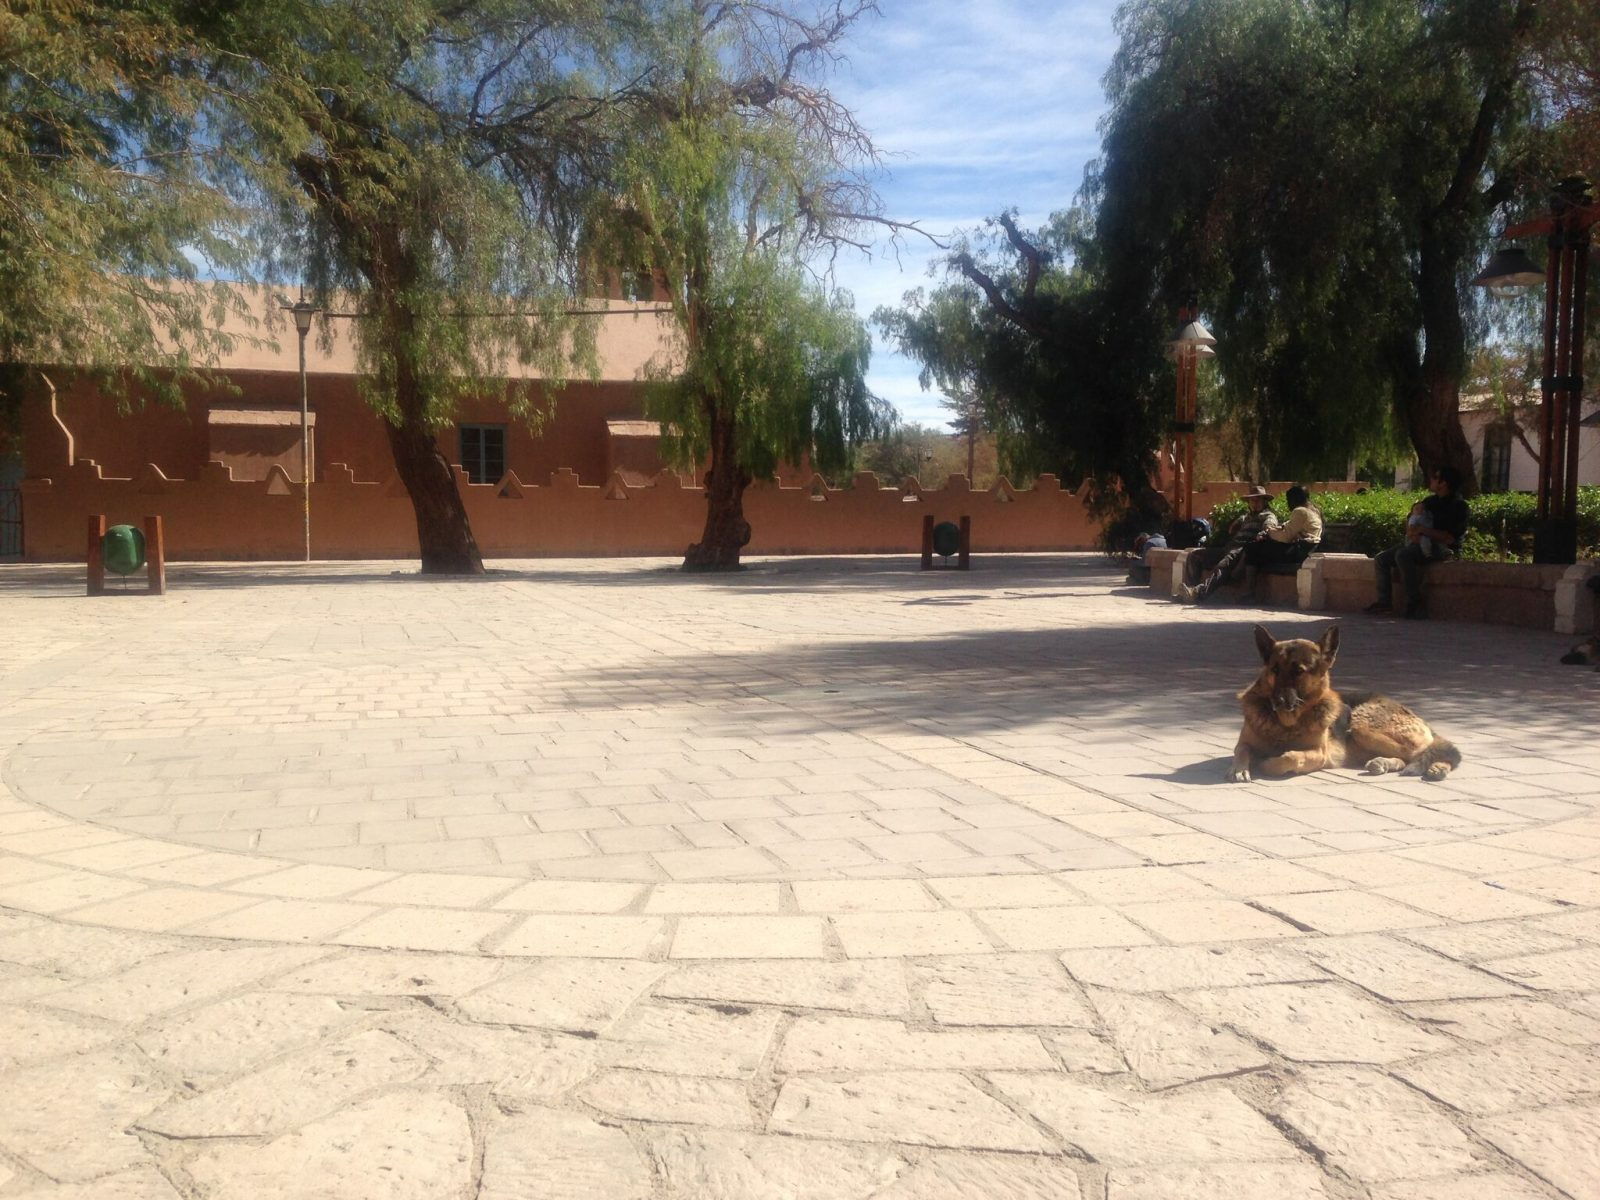 One of the many dogs chilling in the Plaza